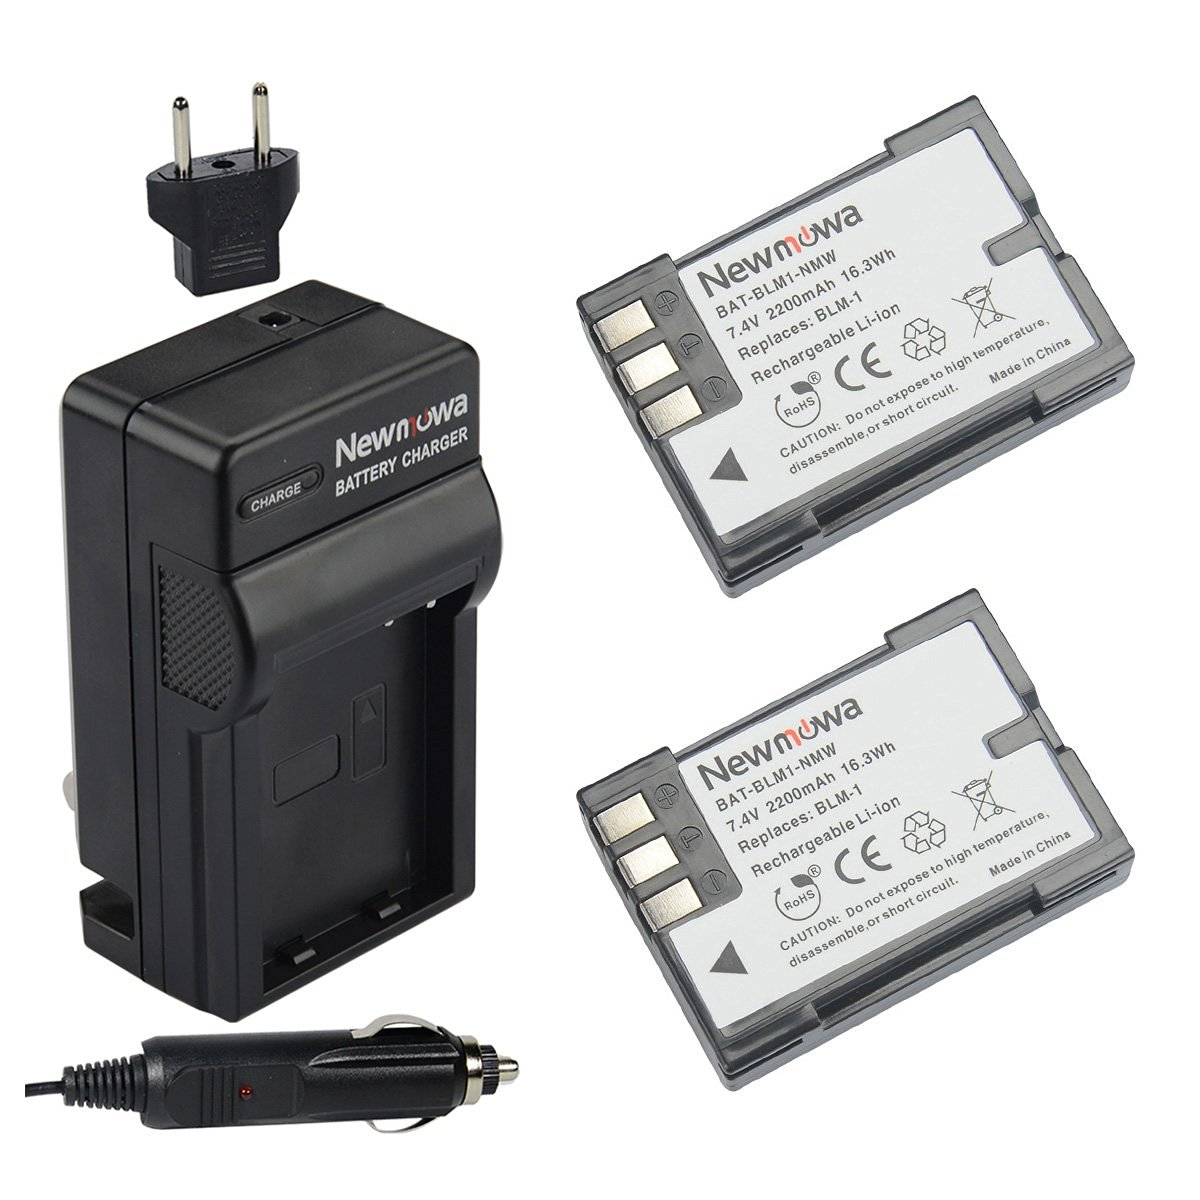 Newmowa BLM-1 Battery (2-Pack) and Charger kit for Olympus EVOLT E-300 E-330 E-500 E-510 C-5060 C-7070 C-8080 E-1 E-3 E-30 E-520 as BLM-1